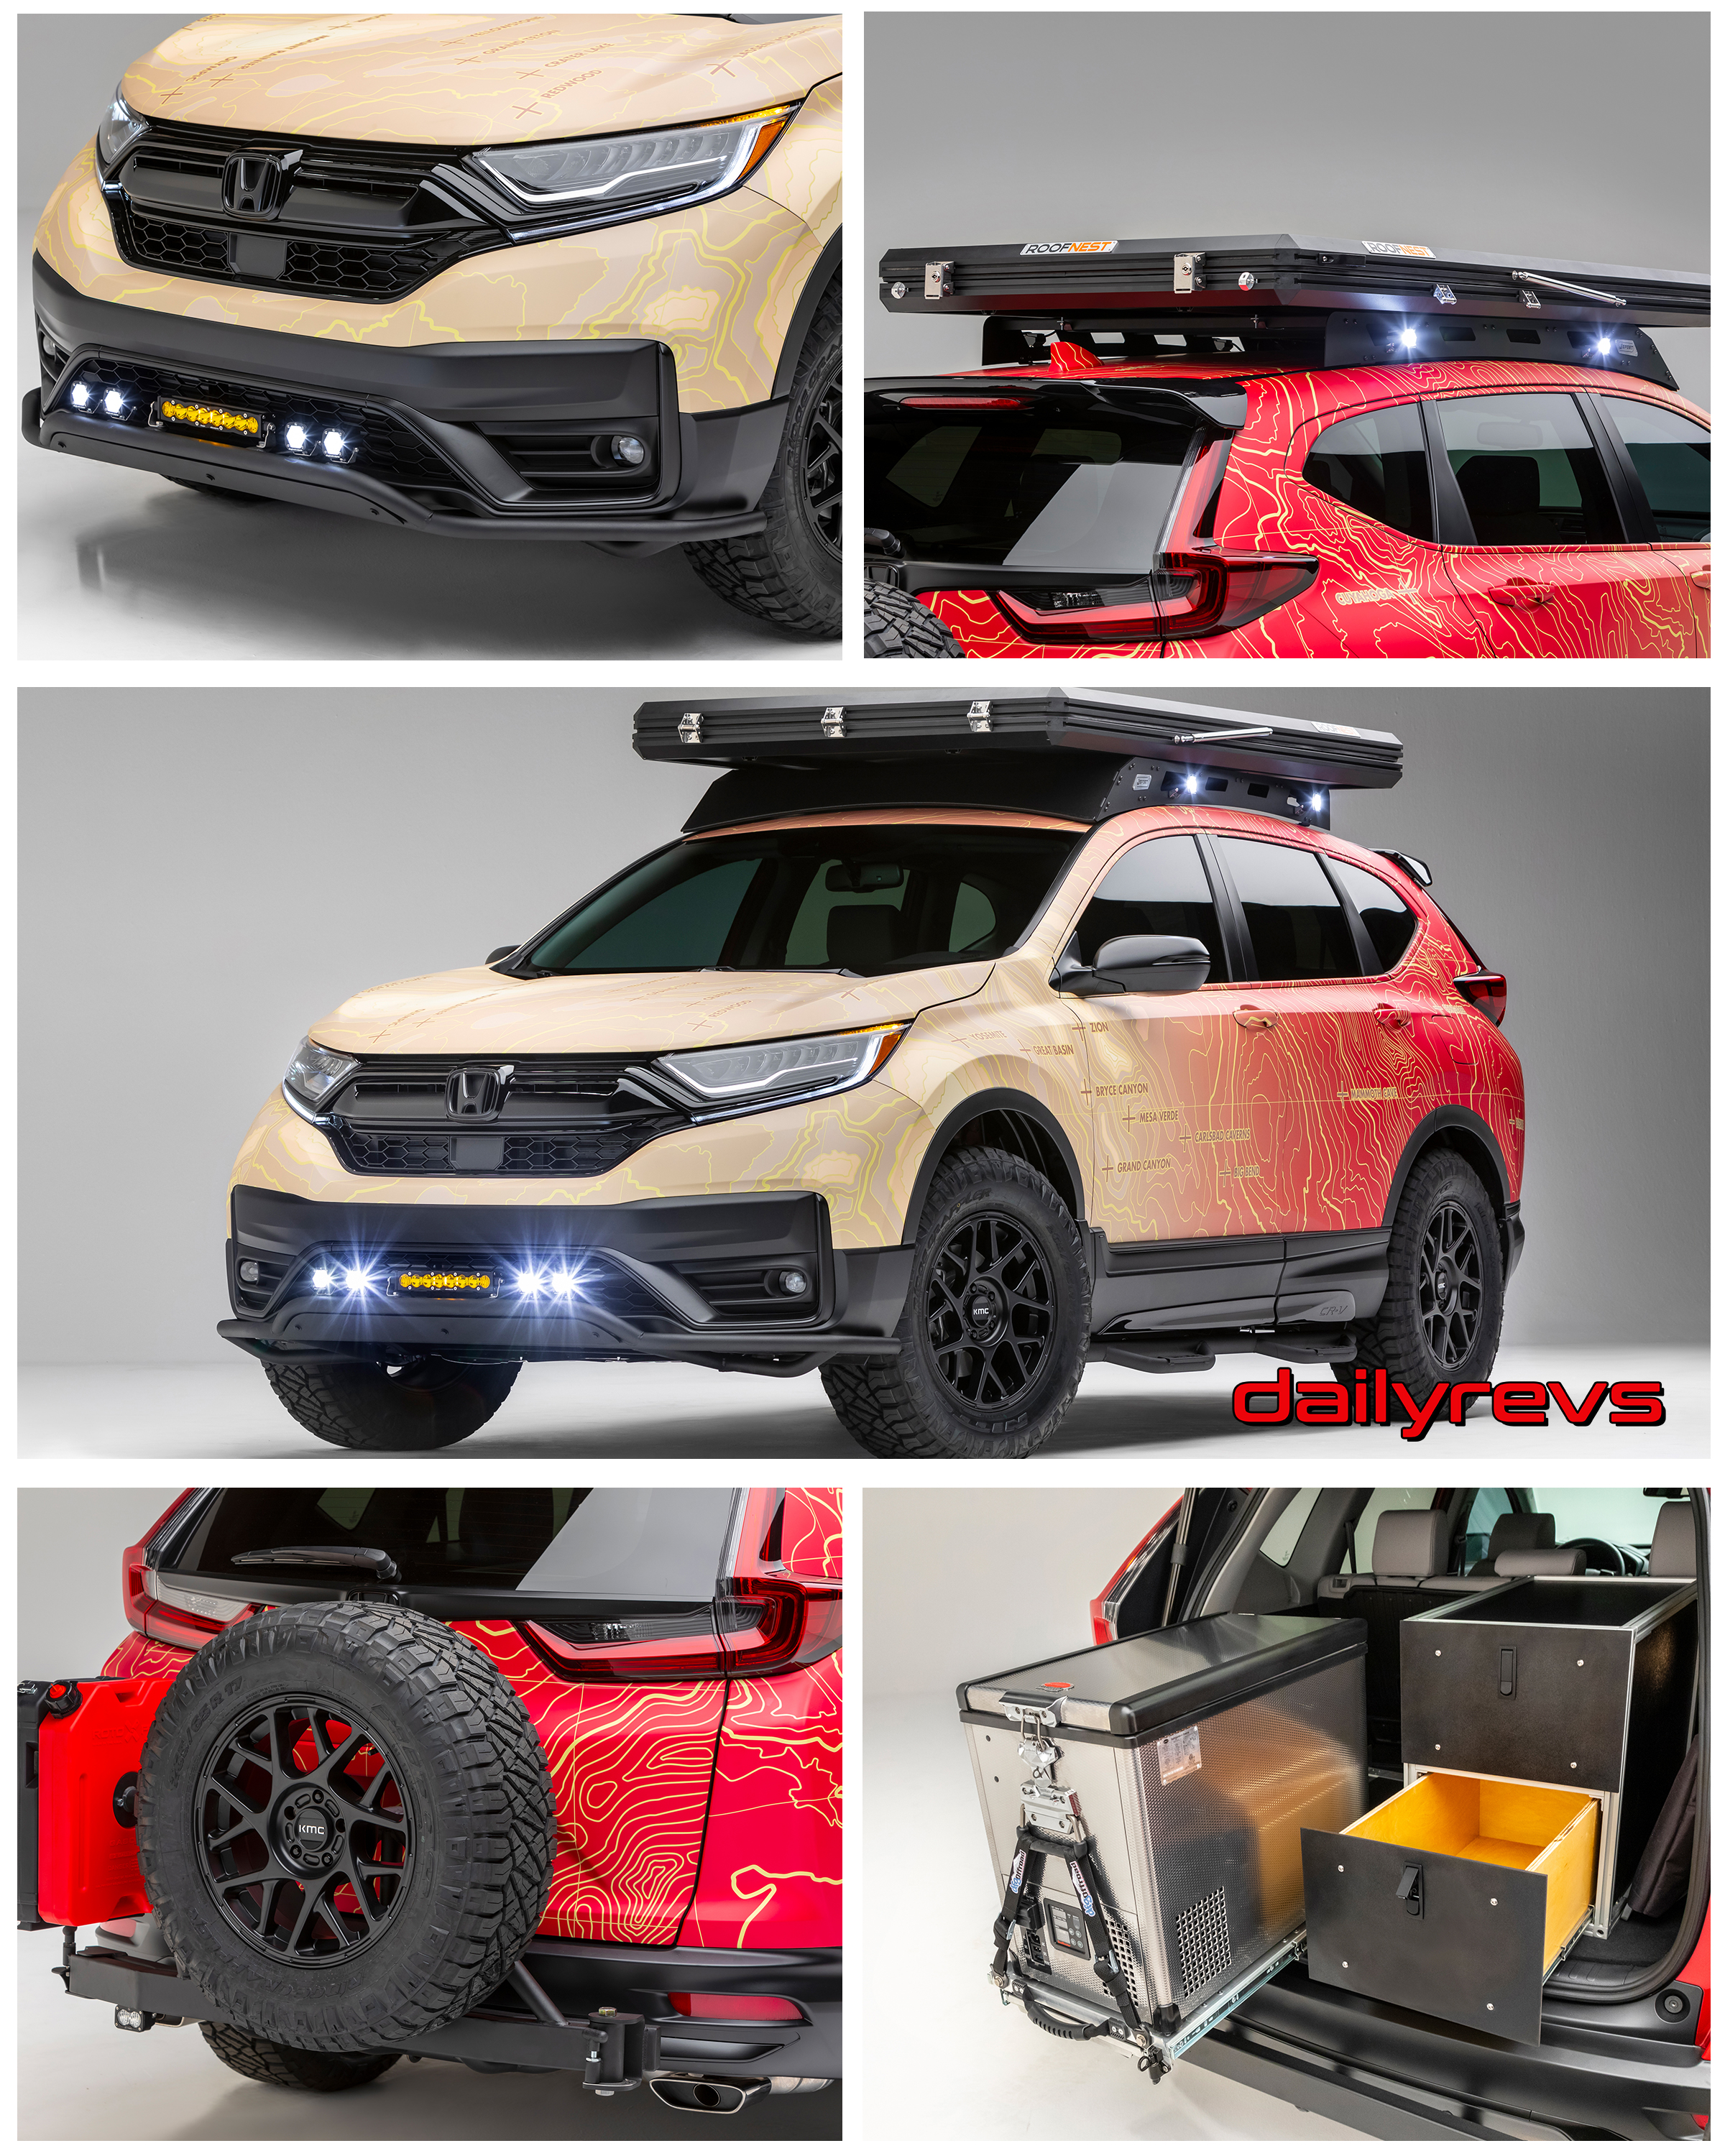 9 Honda CR-V Dream Build by Jsport - HD Pictures, Specs